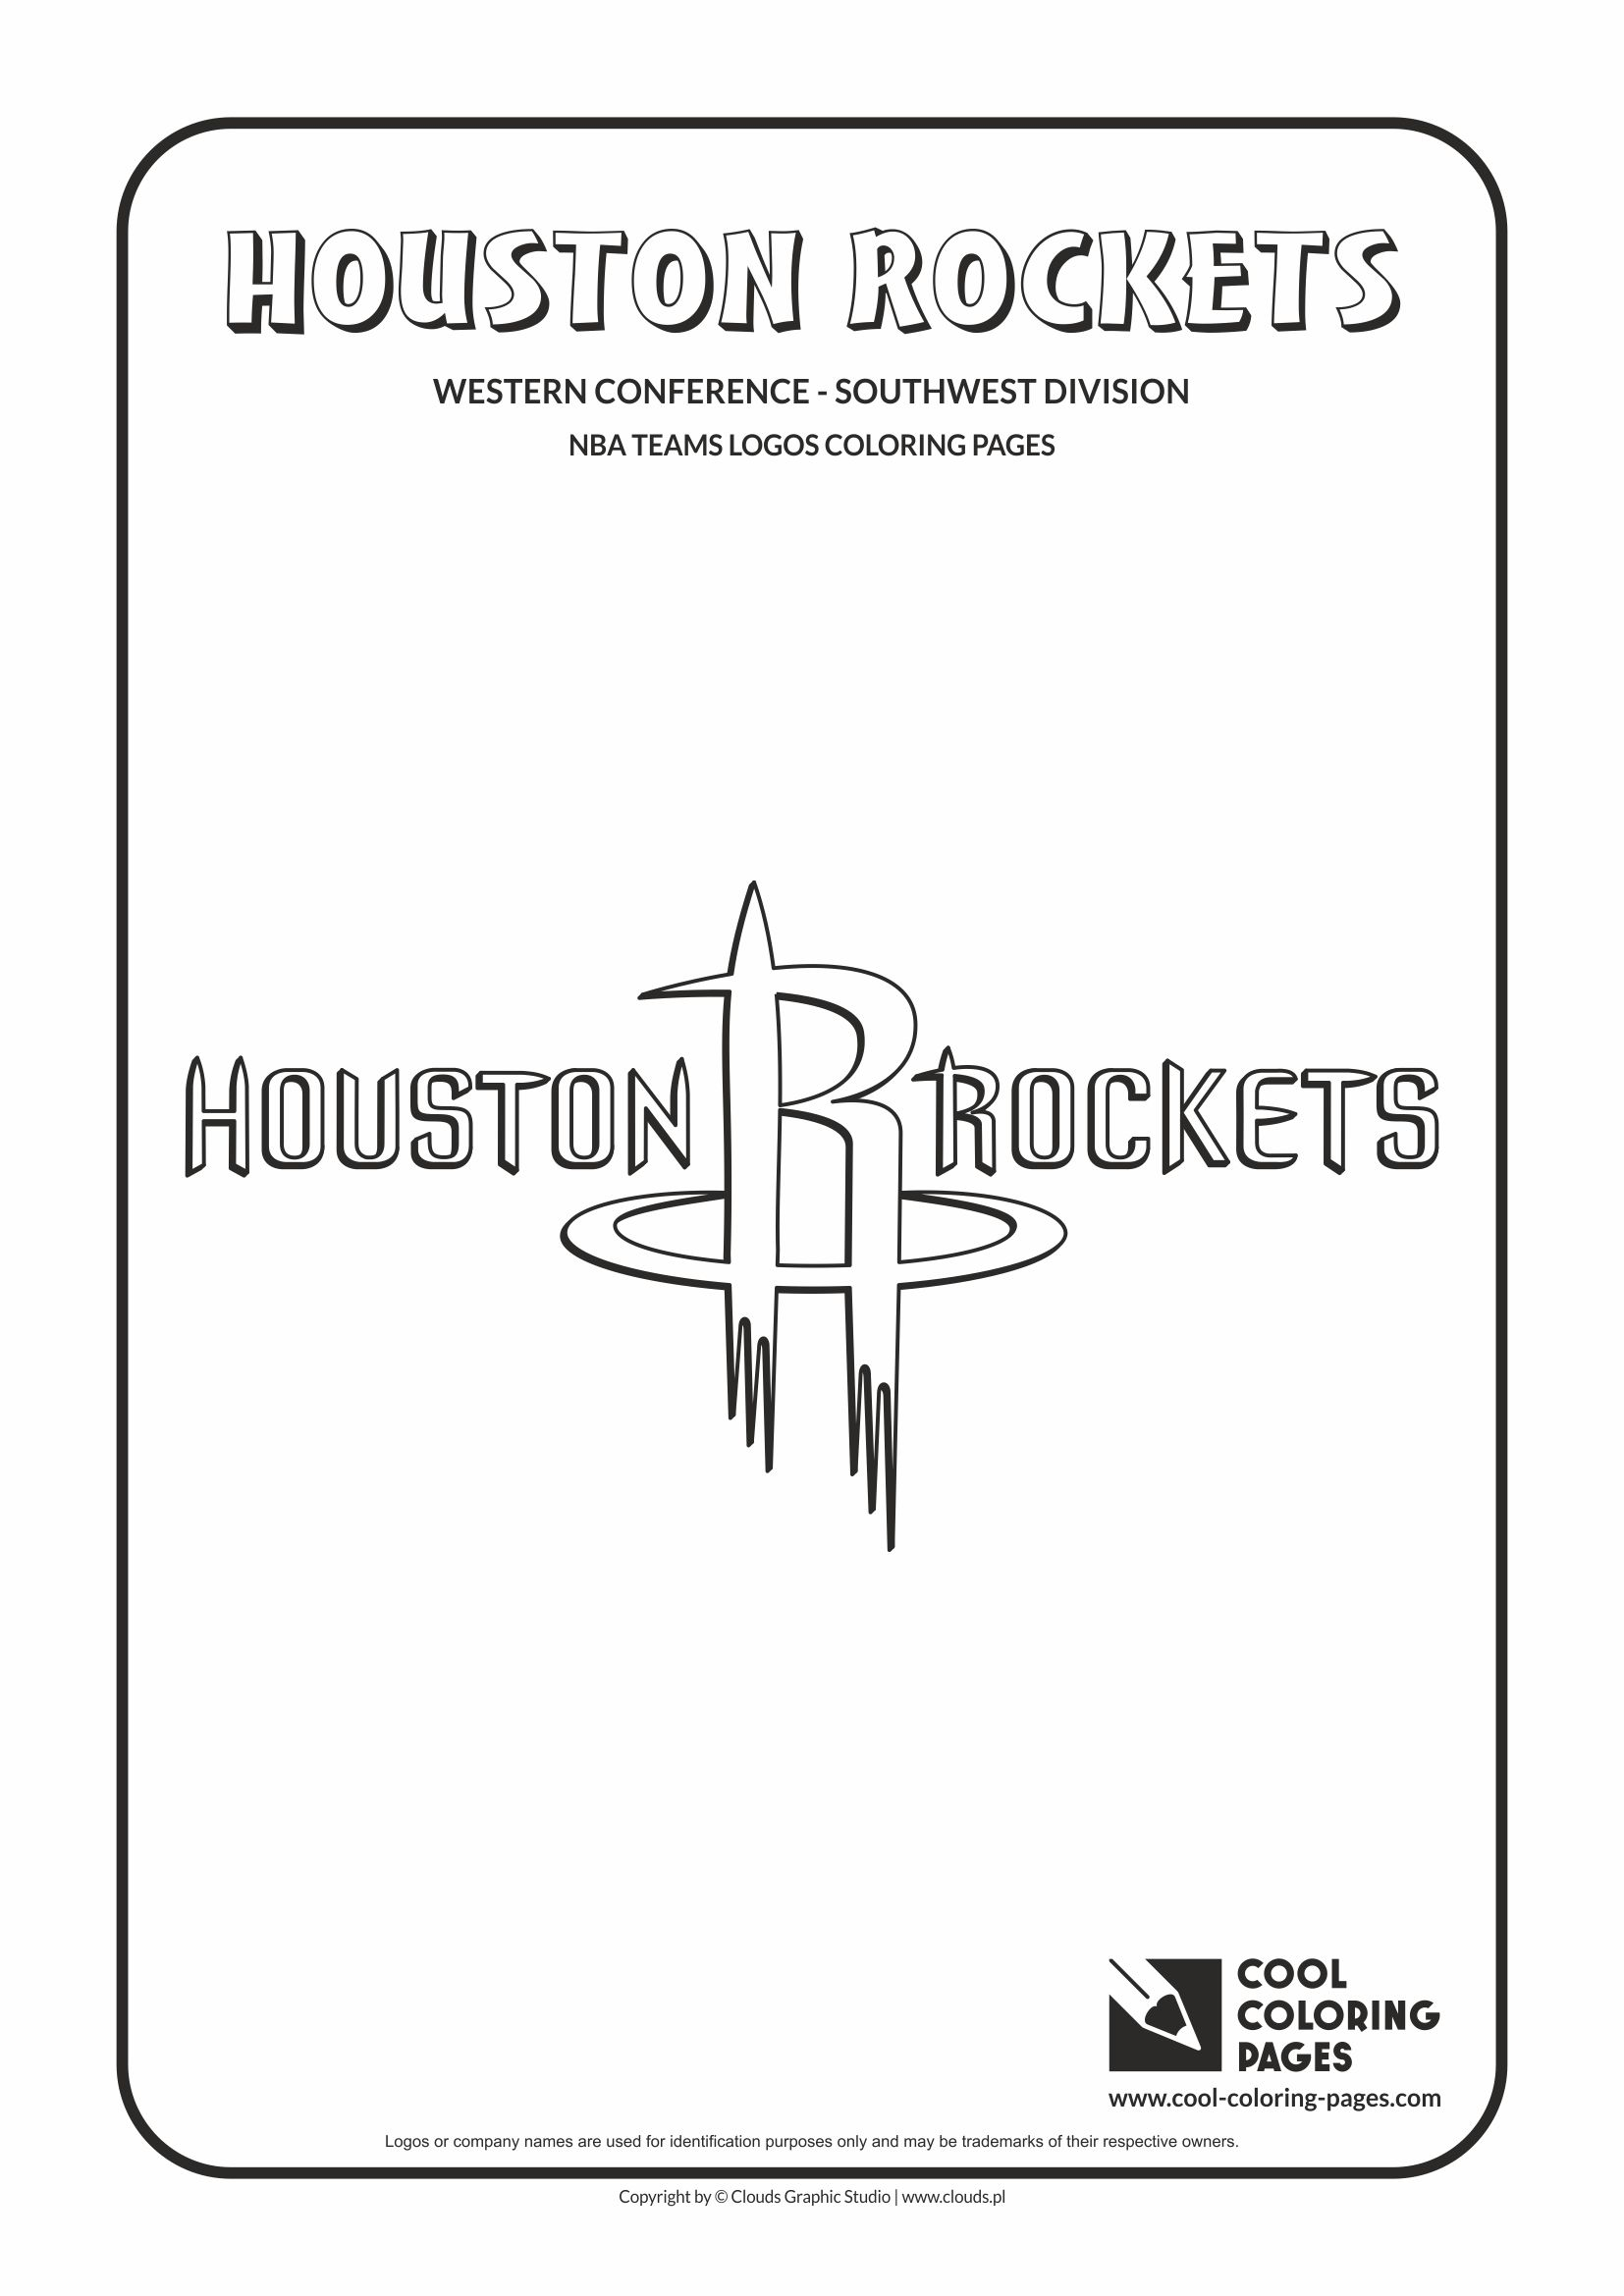 cool coloring pages nba basketball clubs logos western conference southwest division houston